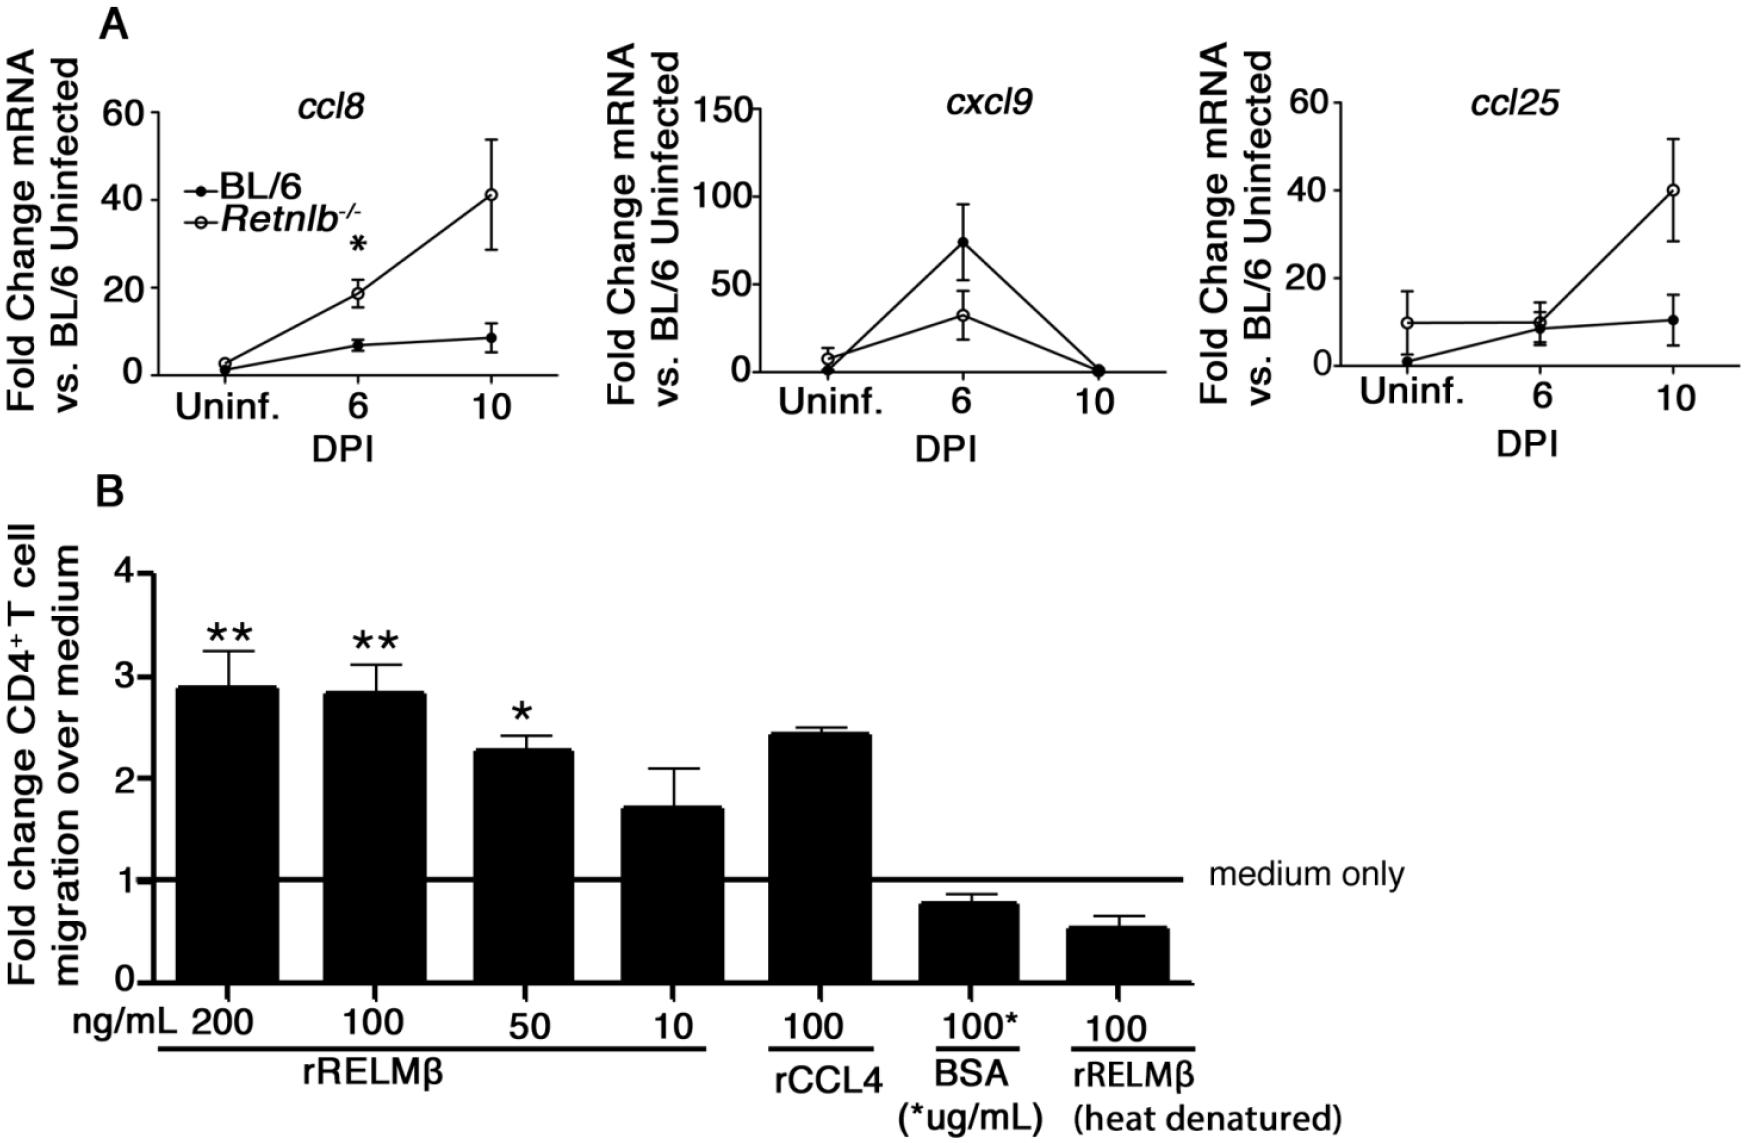 RELM-β acts as a CD4+ T cell chemoattractant.